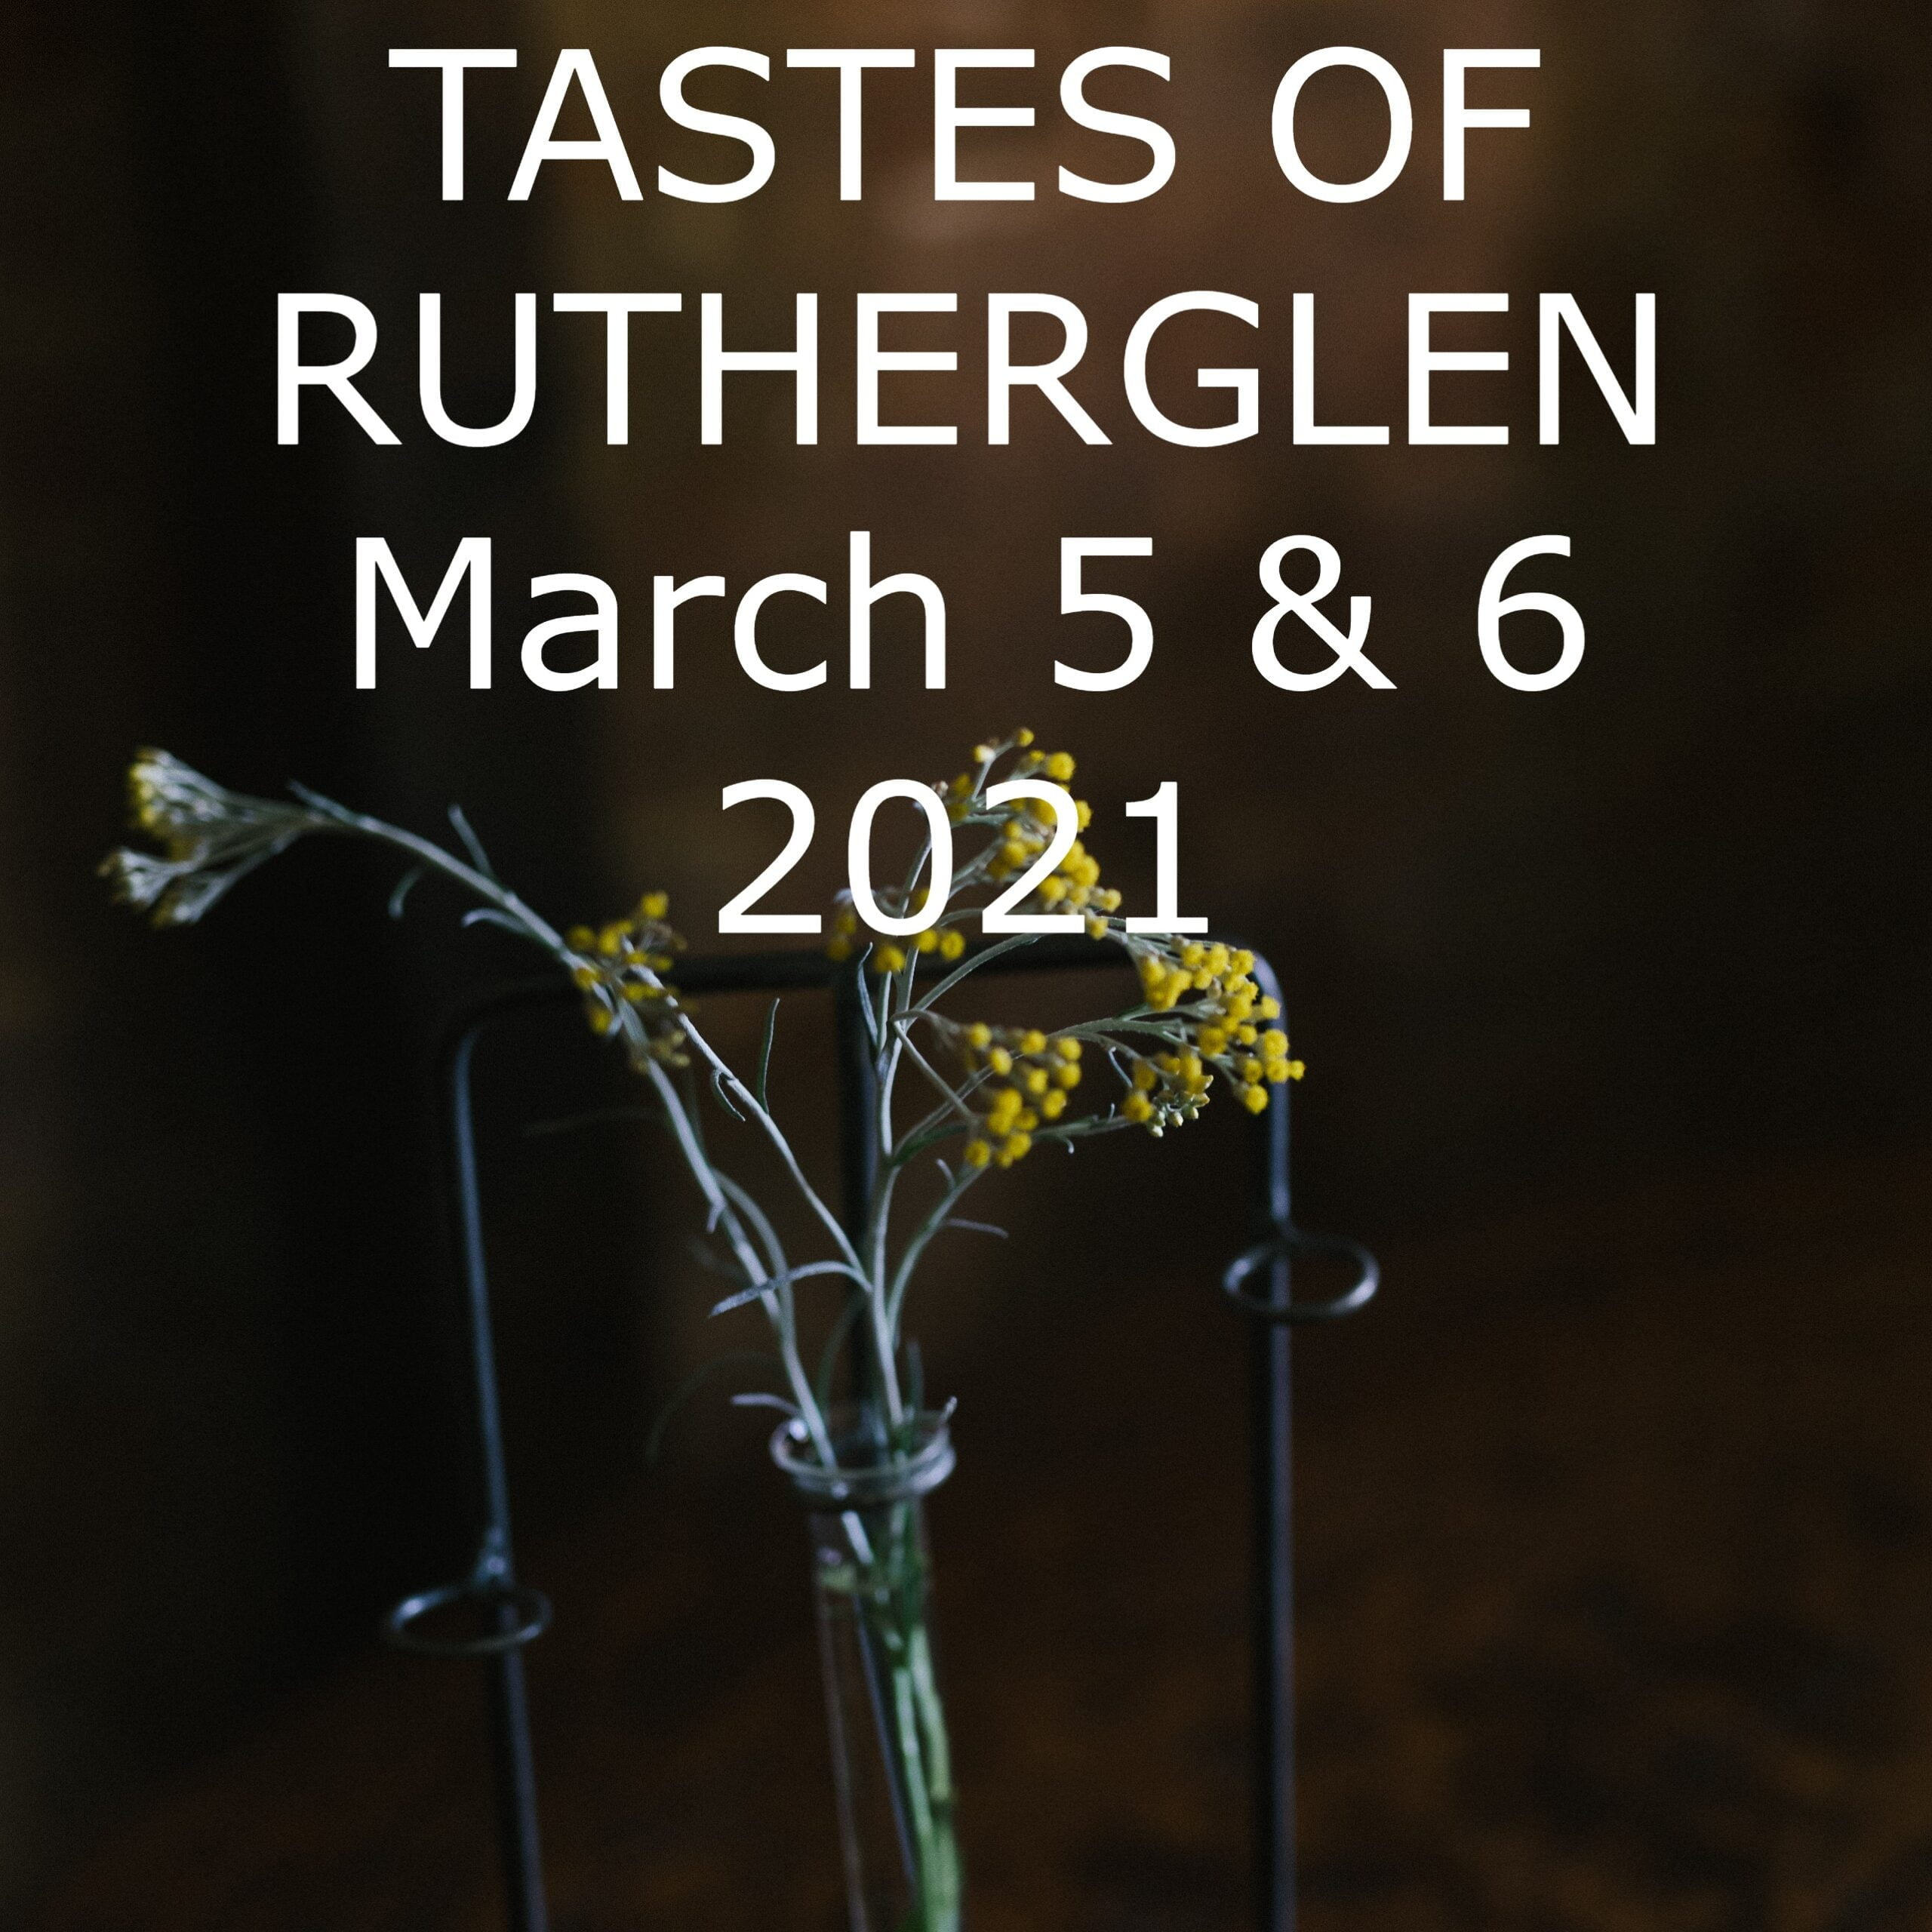 Tastes of Rutherglen – 5 & 6 March 2021